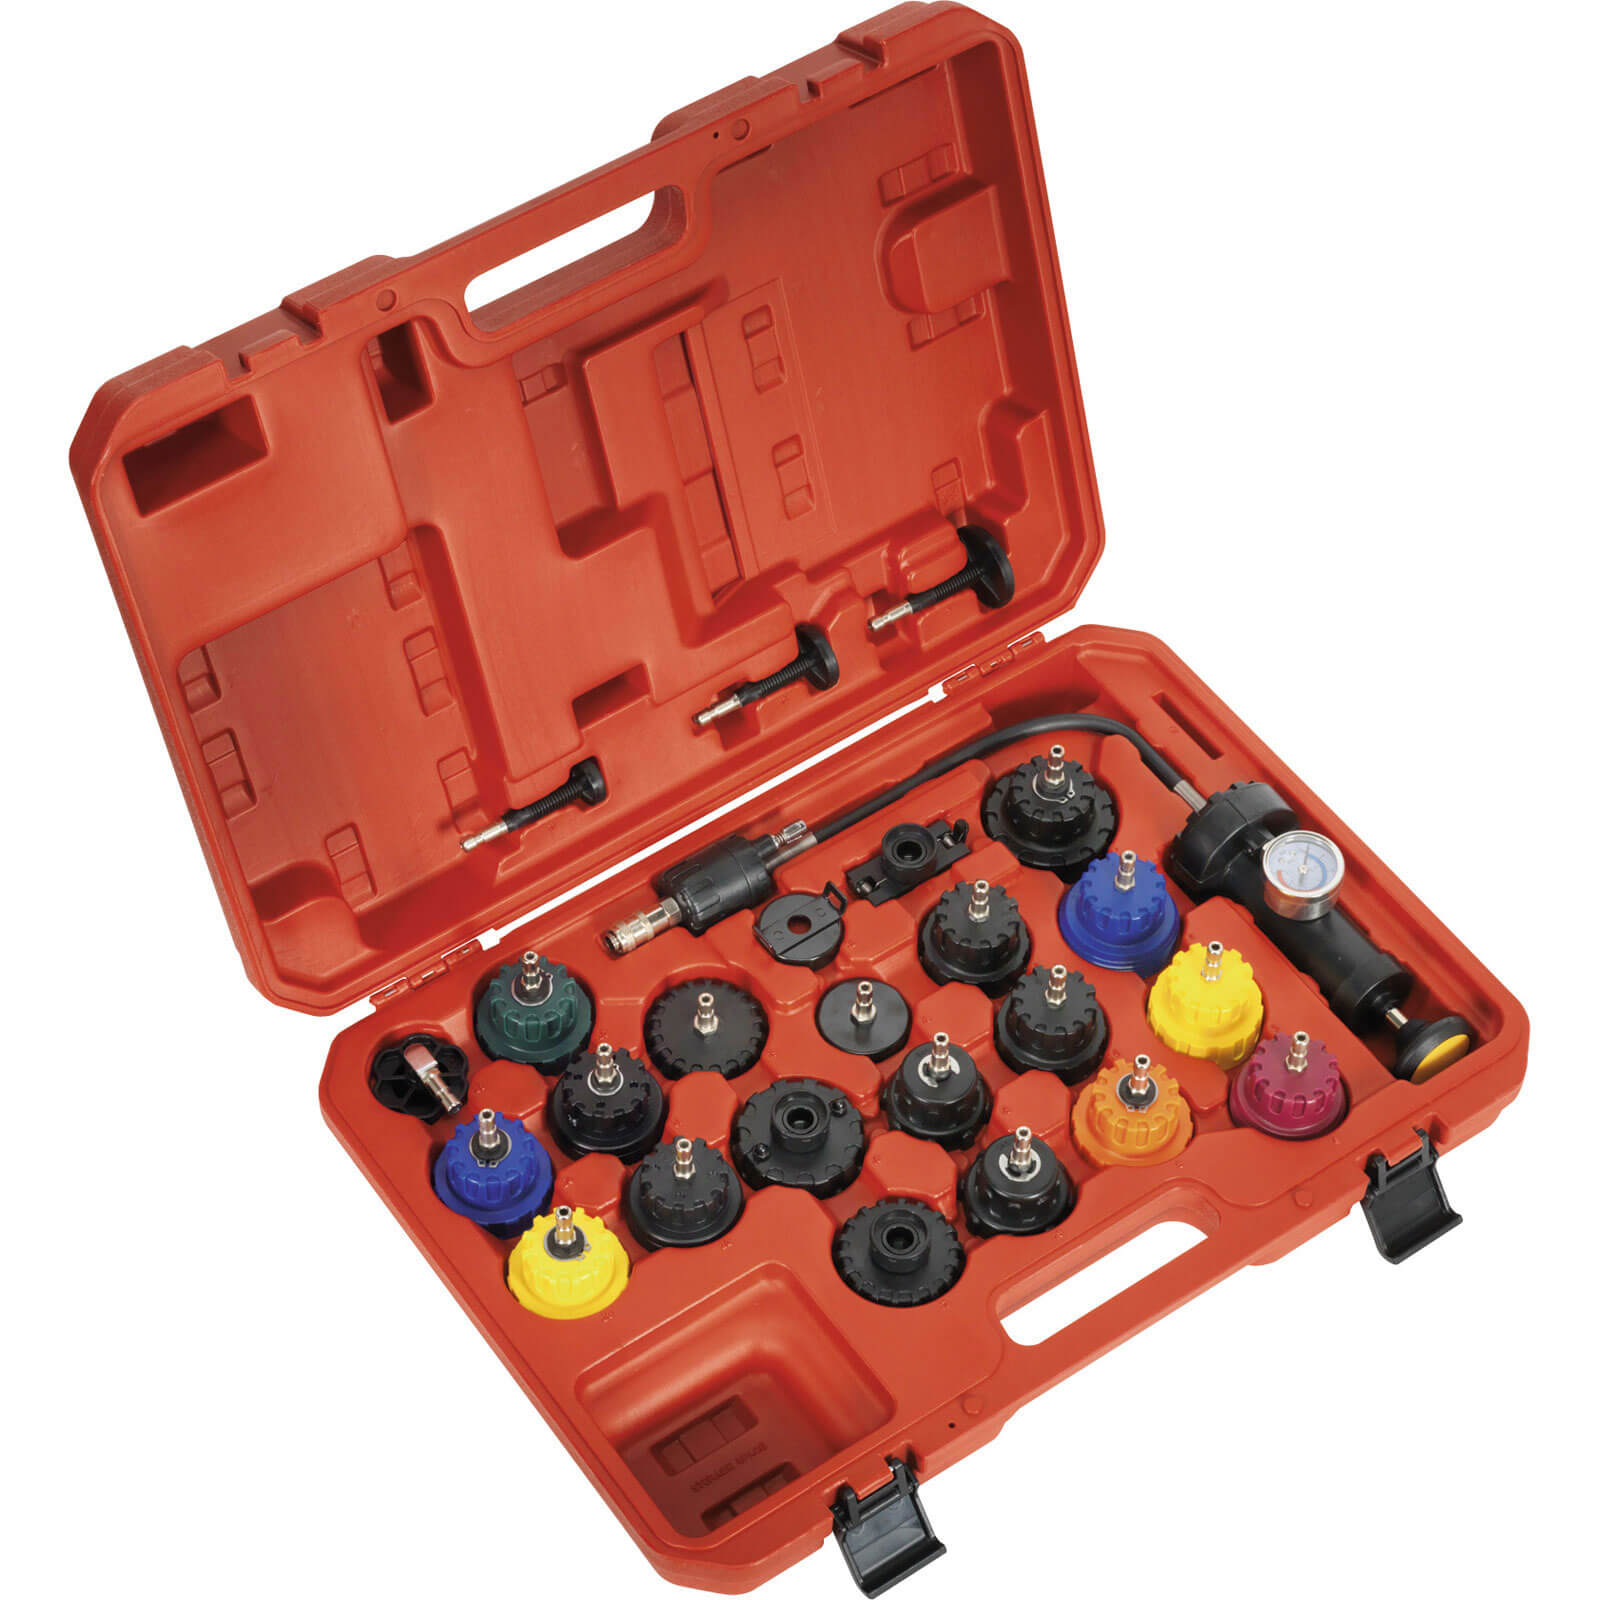 Image of Sealey 25 Piece Automotive Cooling System Pressure Test Kit